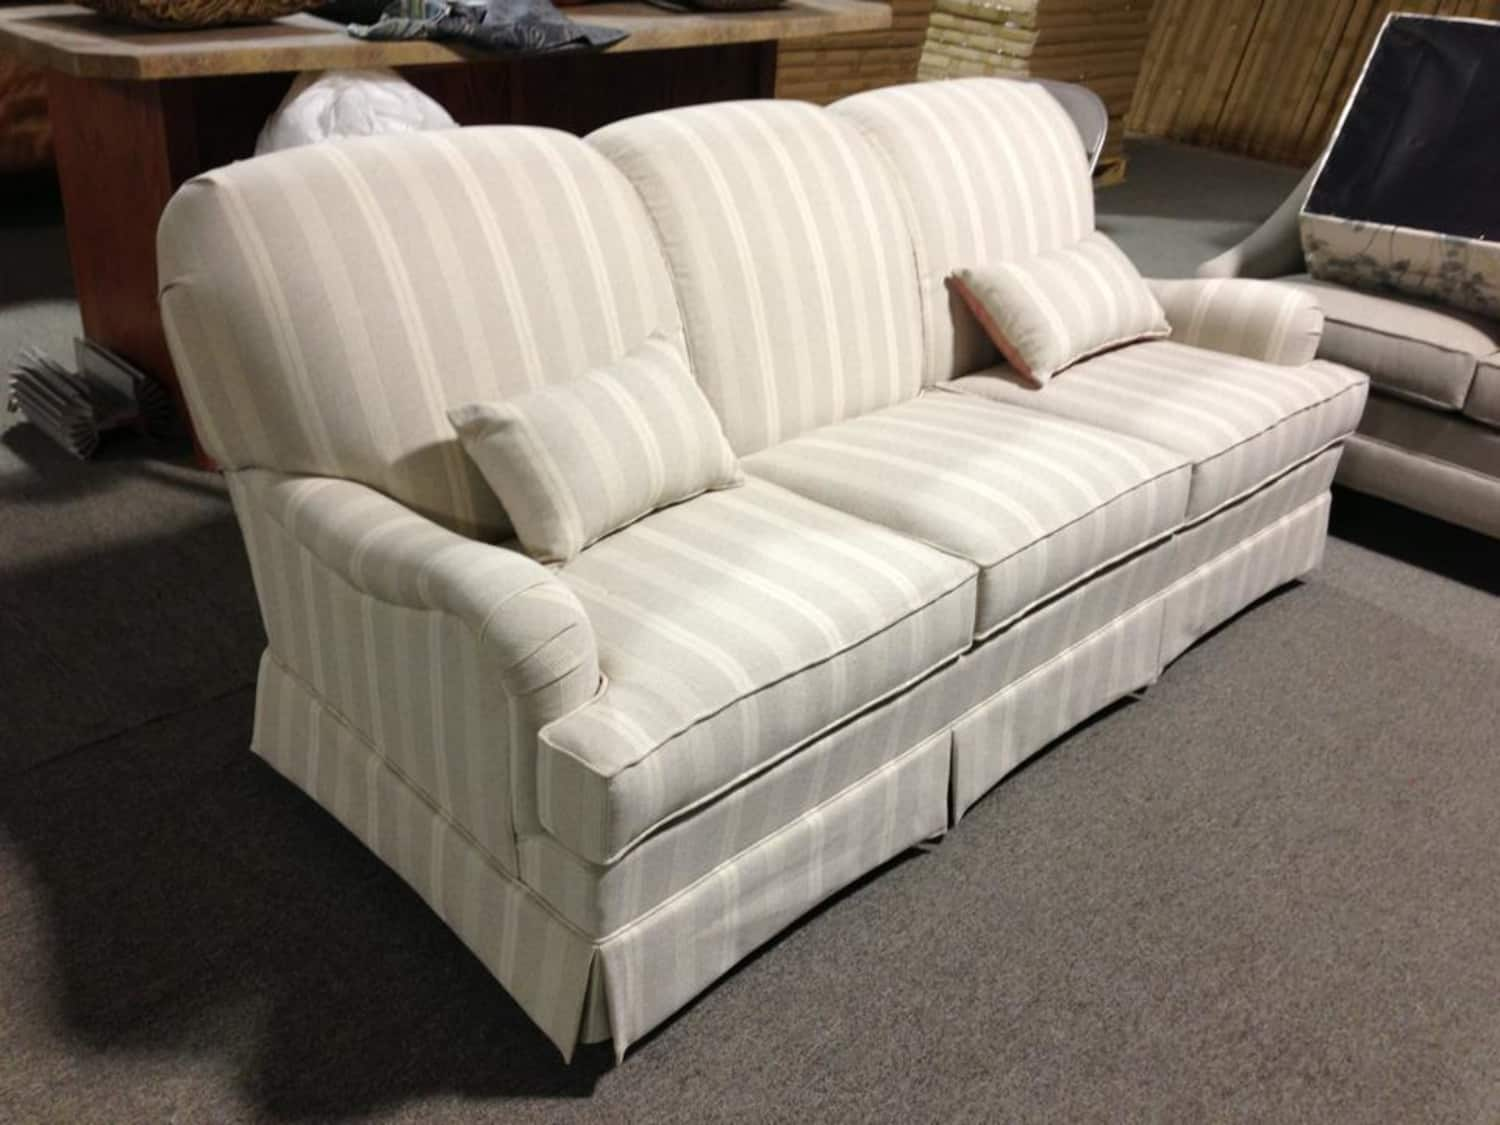 Charles Schneider Furniture Sofa Best Quality Apartment Therapy S